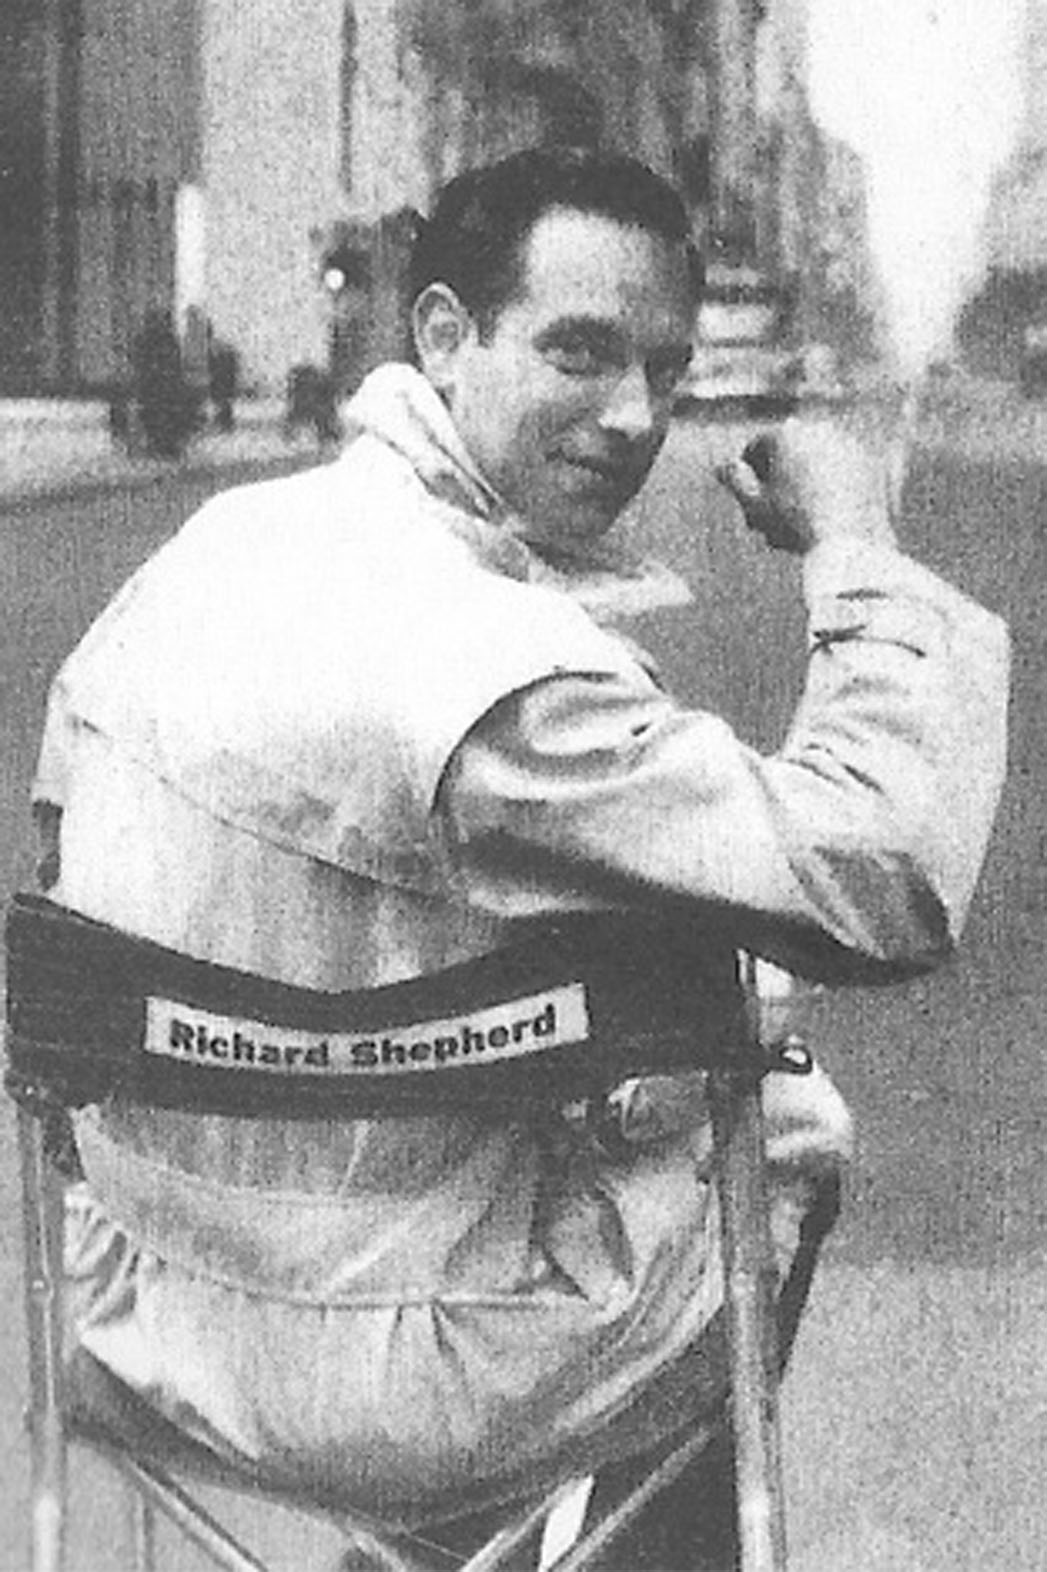 richard_shepherd_a_p_0